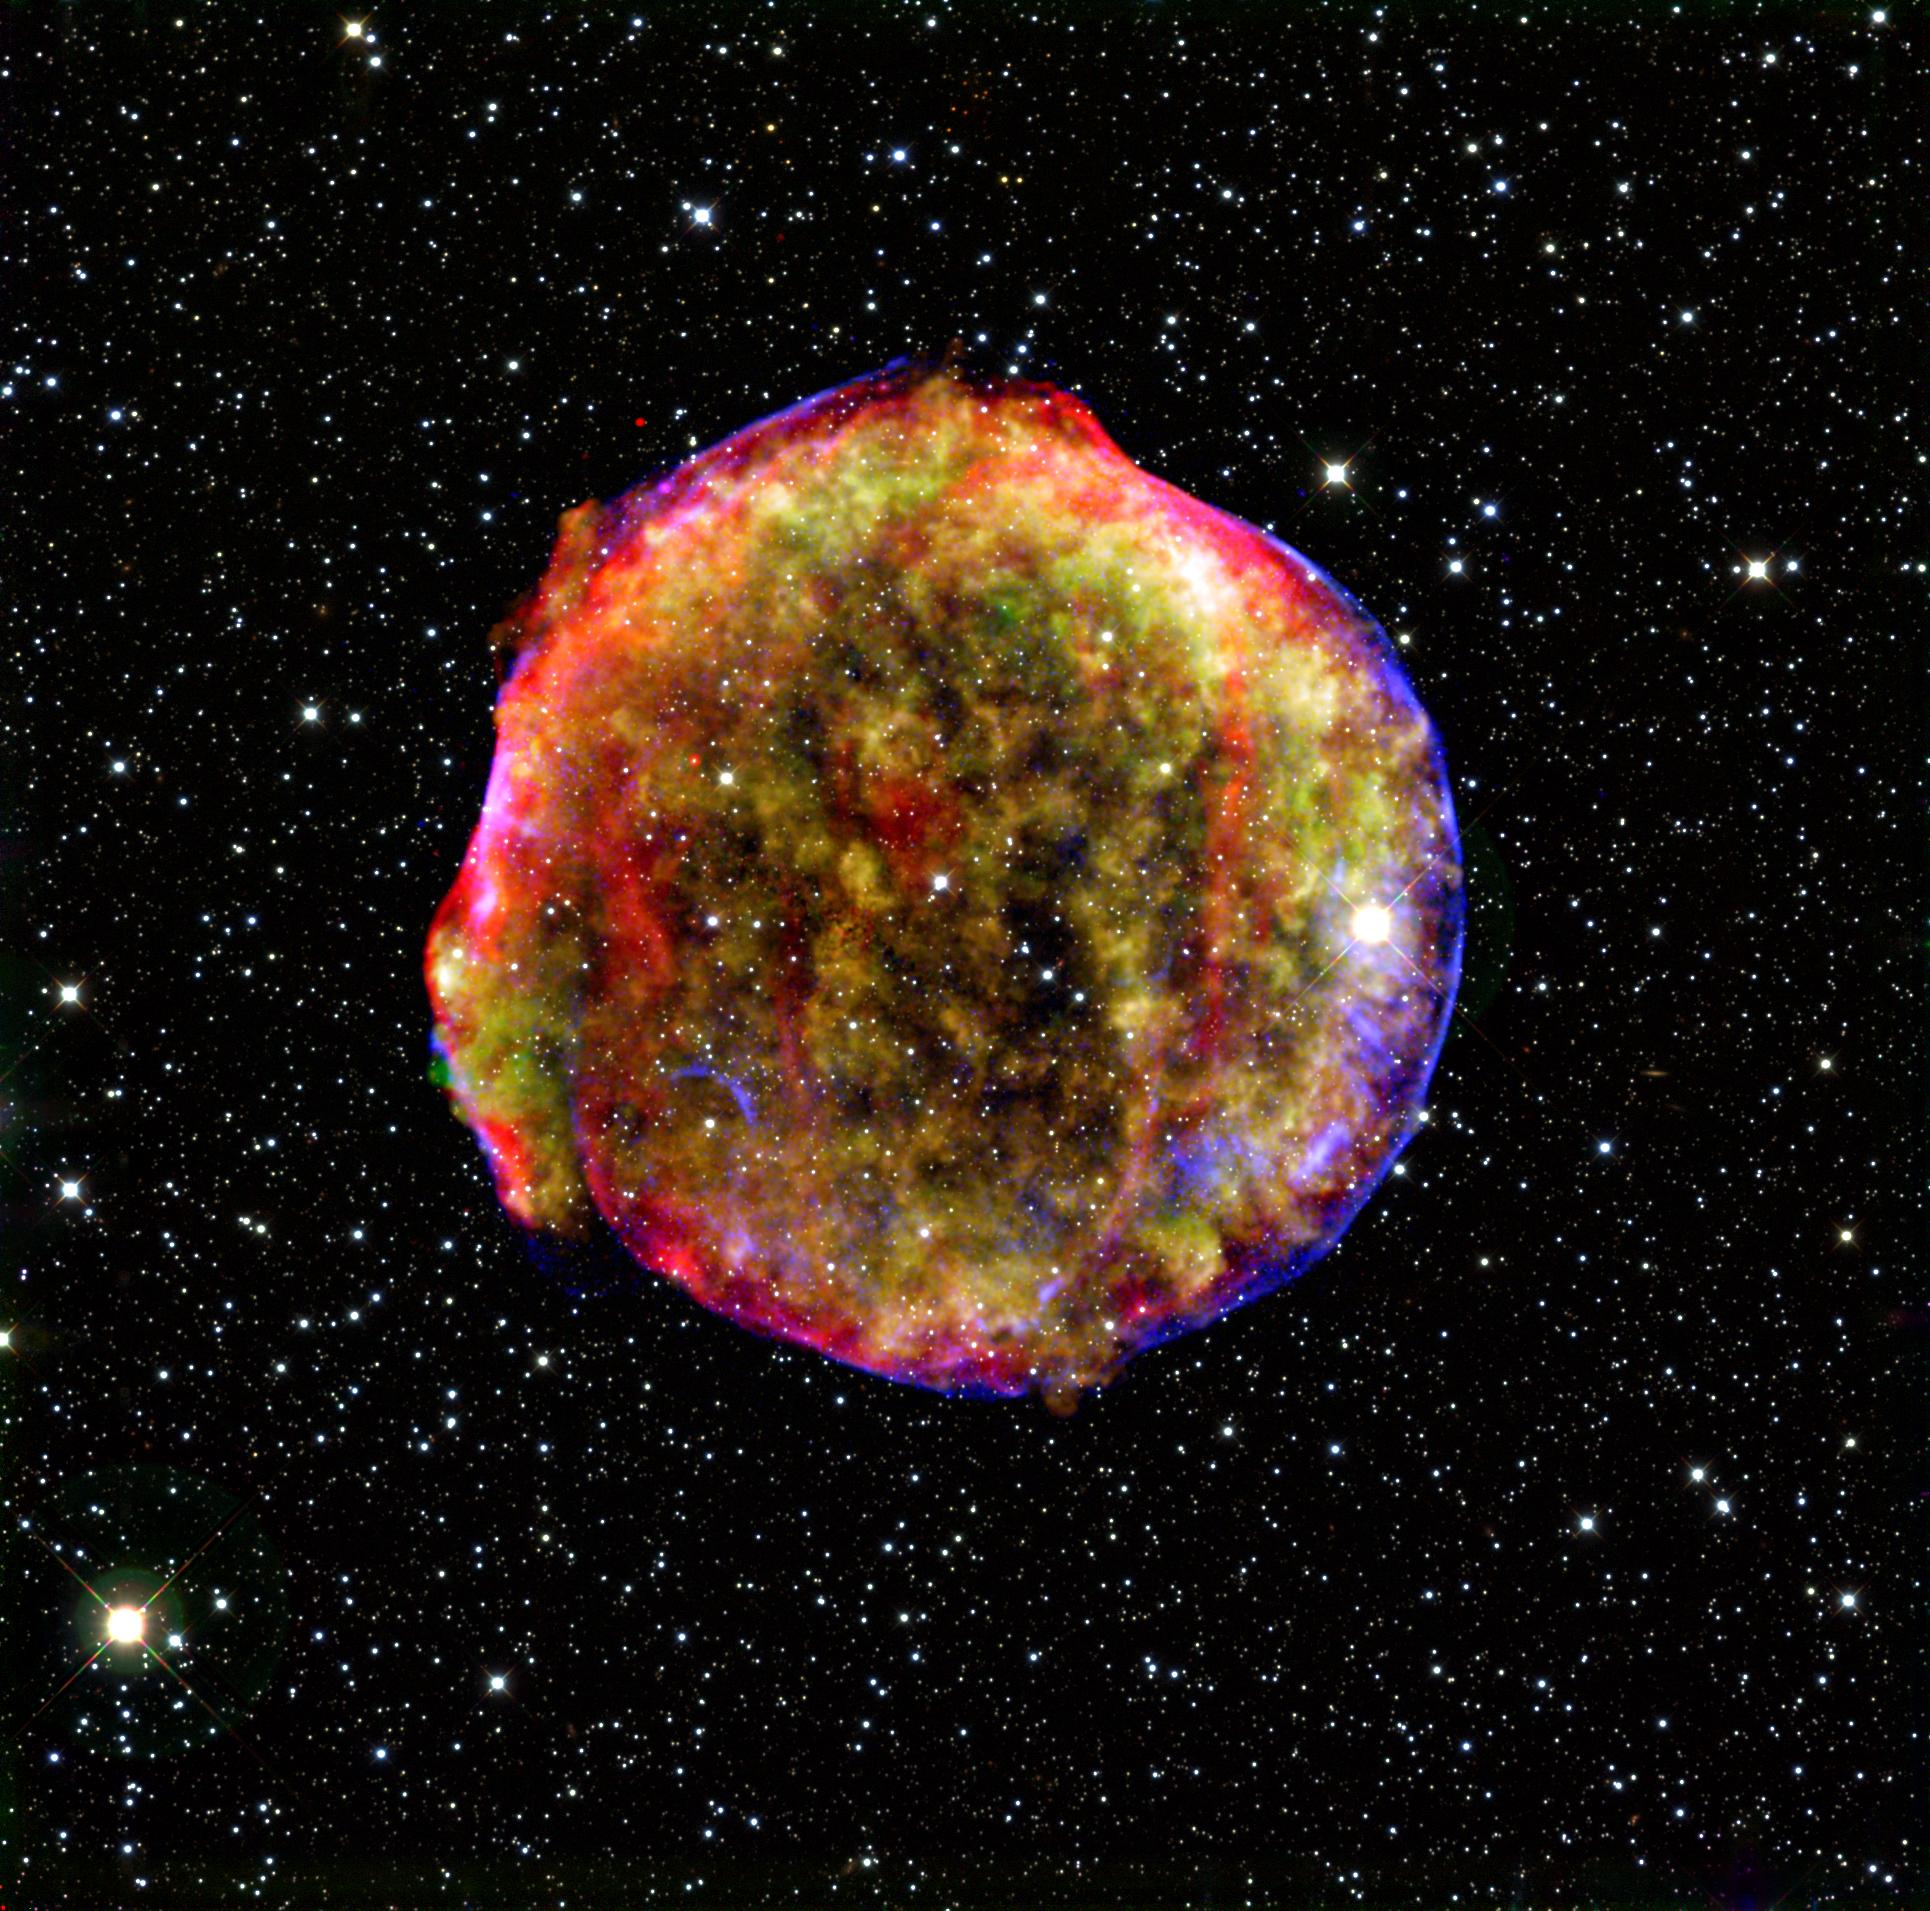 Vivid View of a Supernova Remnant | NASA